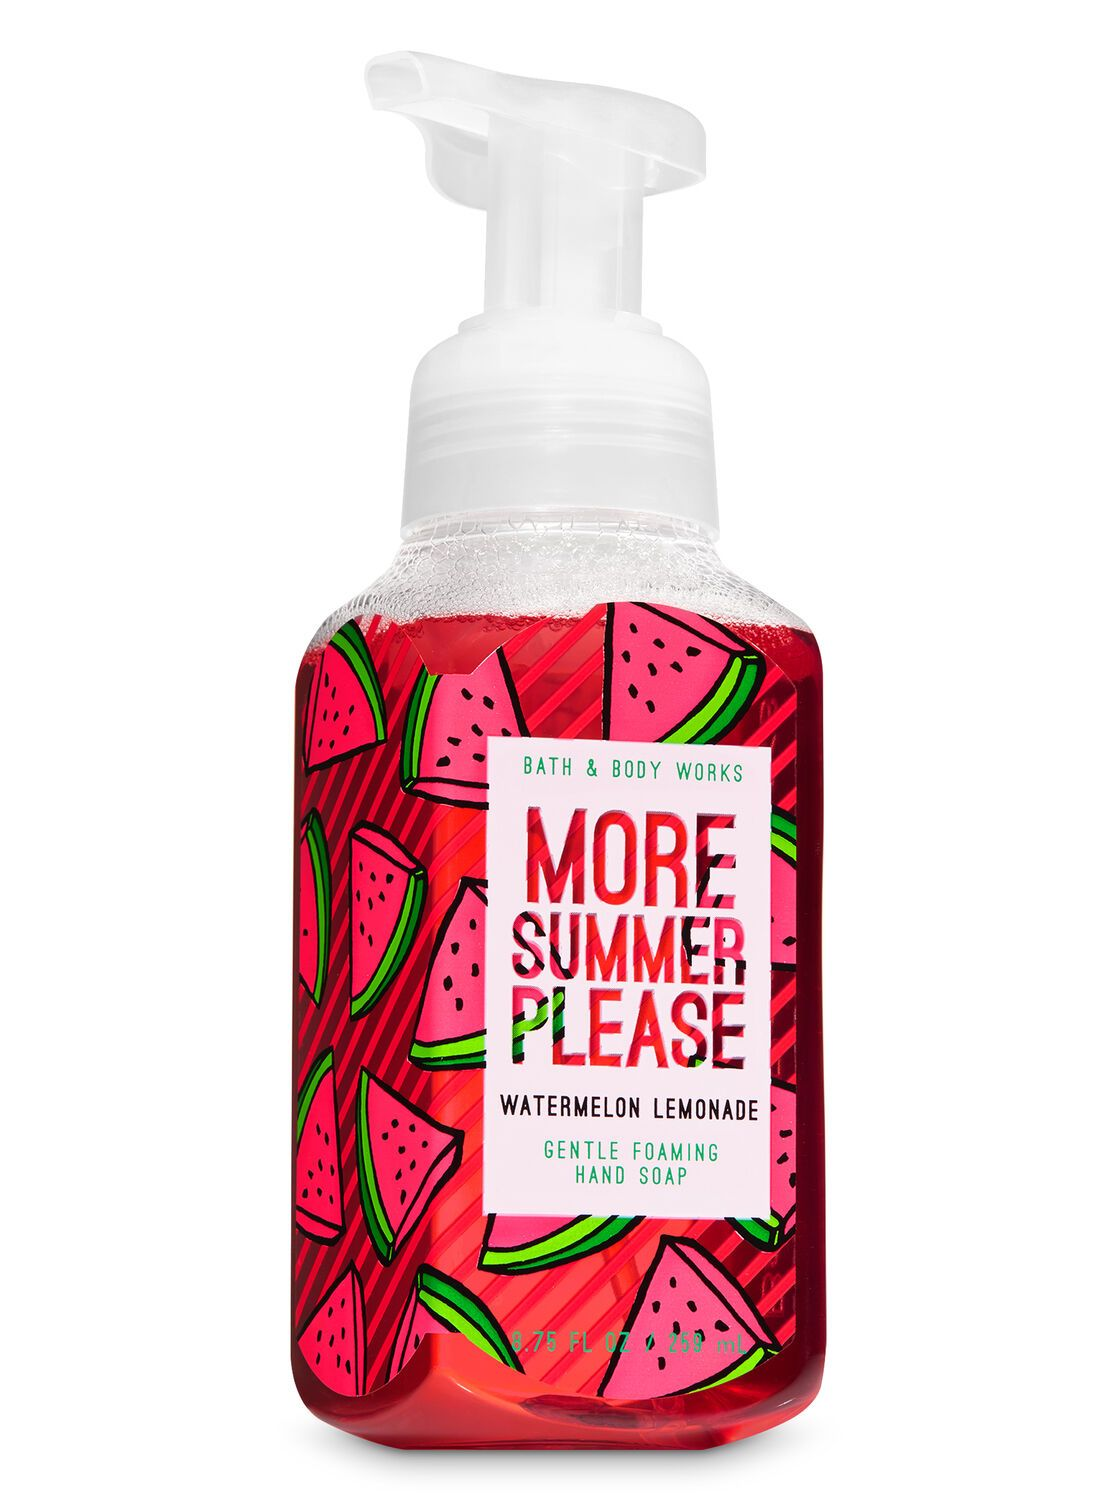 Bath Body Works Watermelon Lemonade Gentle Foaming Hand Soap In